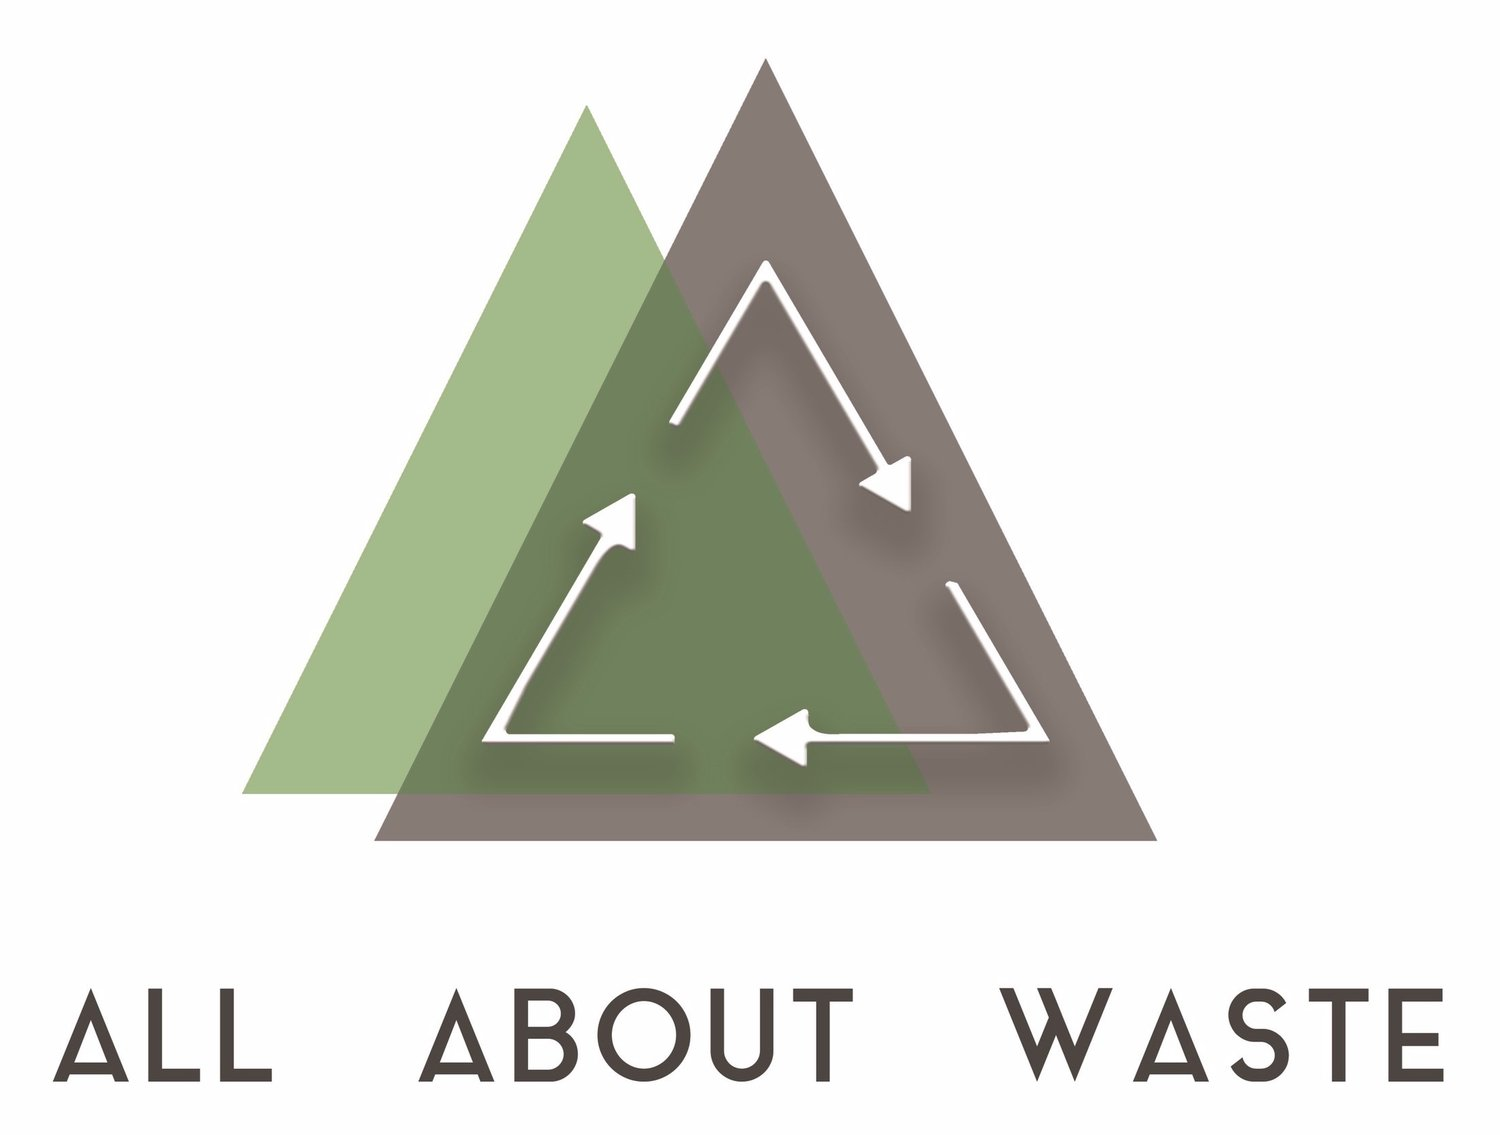 All About Waste: Waste Management and Sustainability Consulting